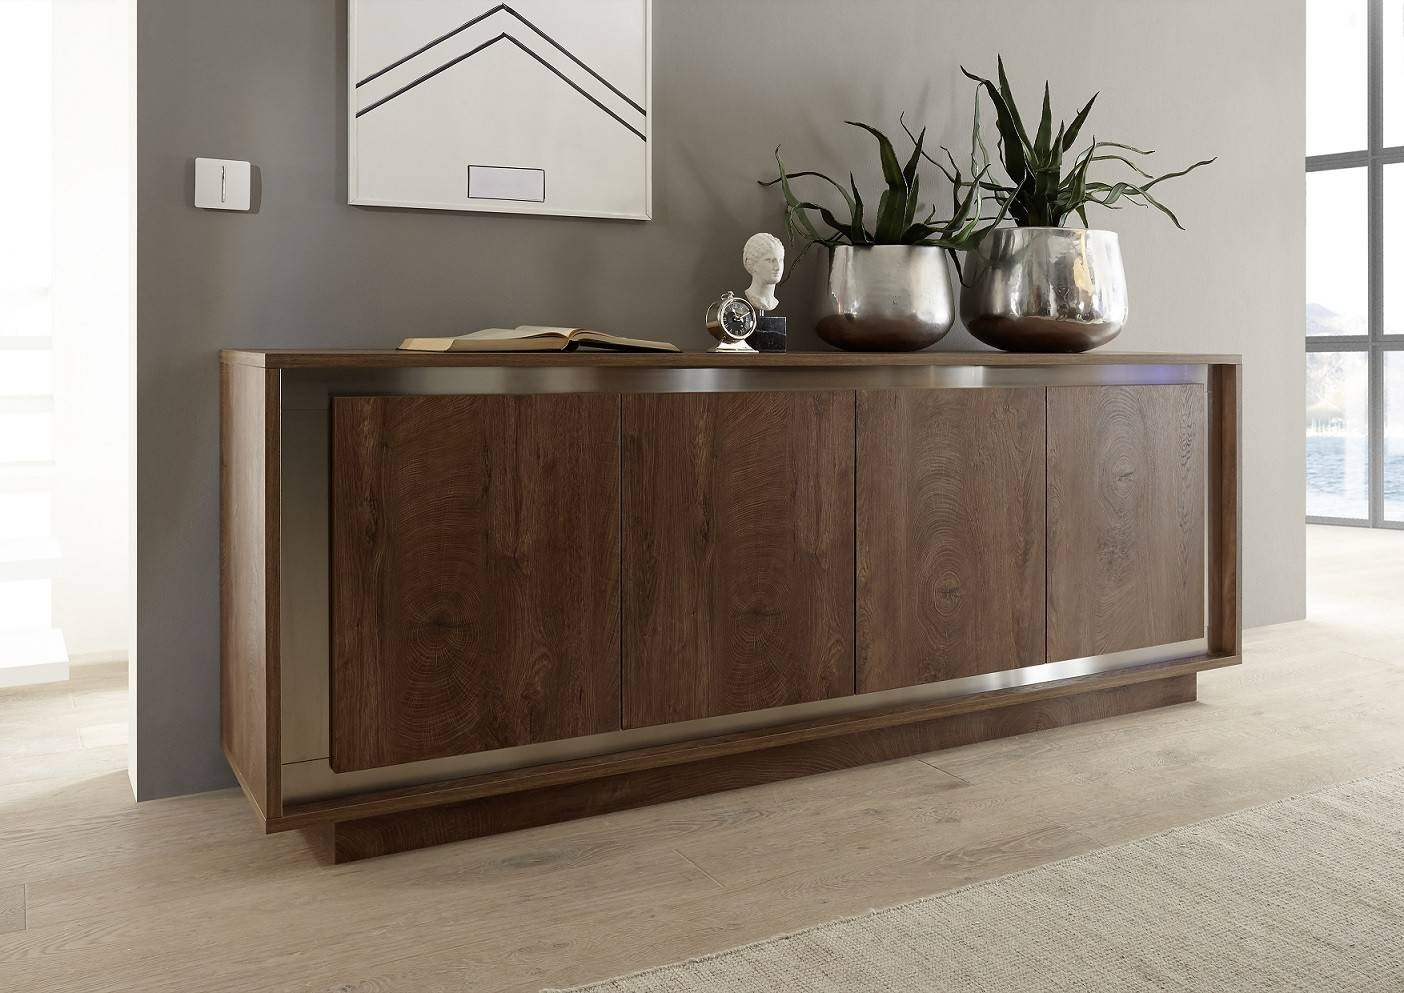 Modern Sideboards Uk - Sena Home Furniture within Contemporary Oak Sideboards (Image 14 of 30)